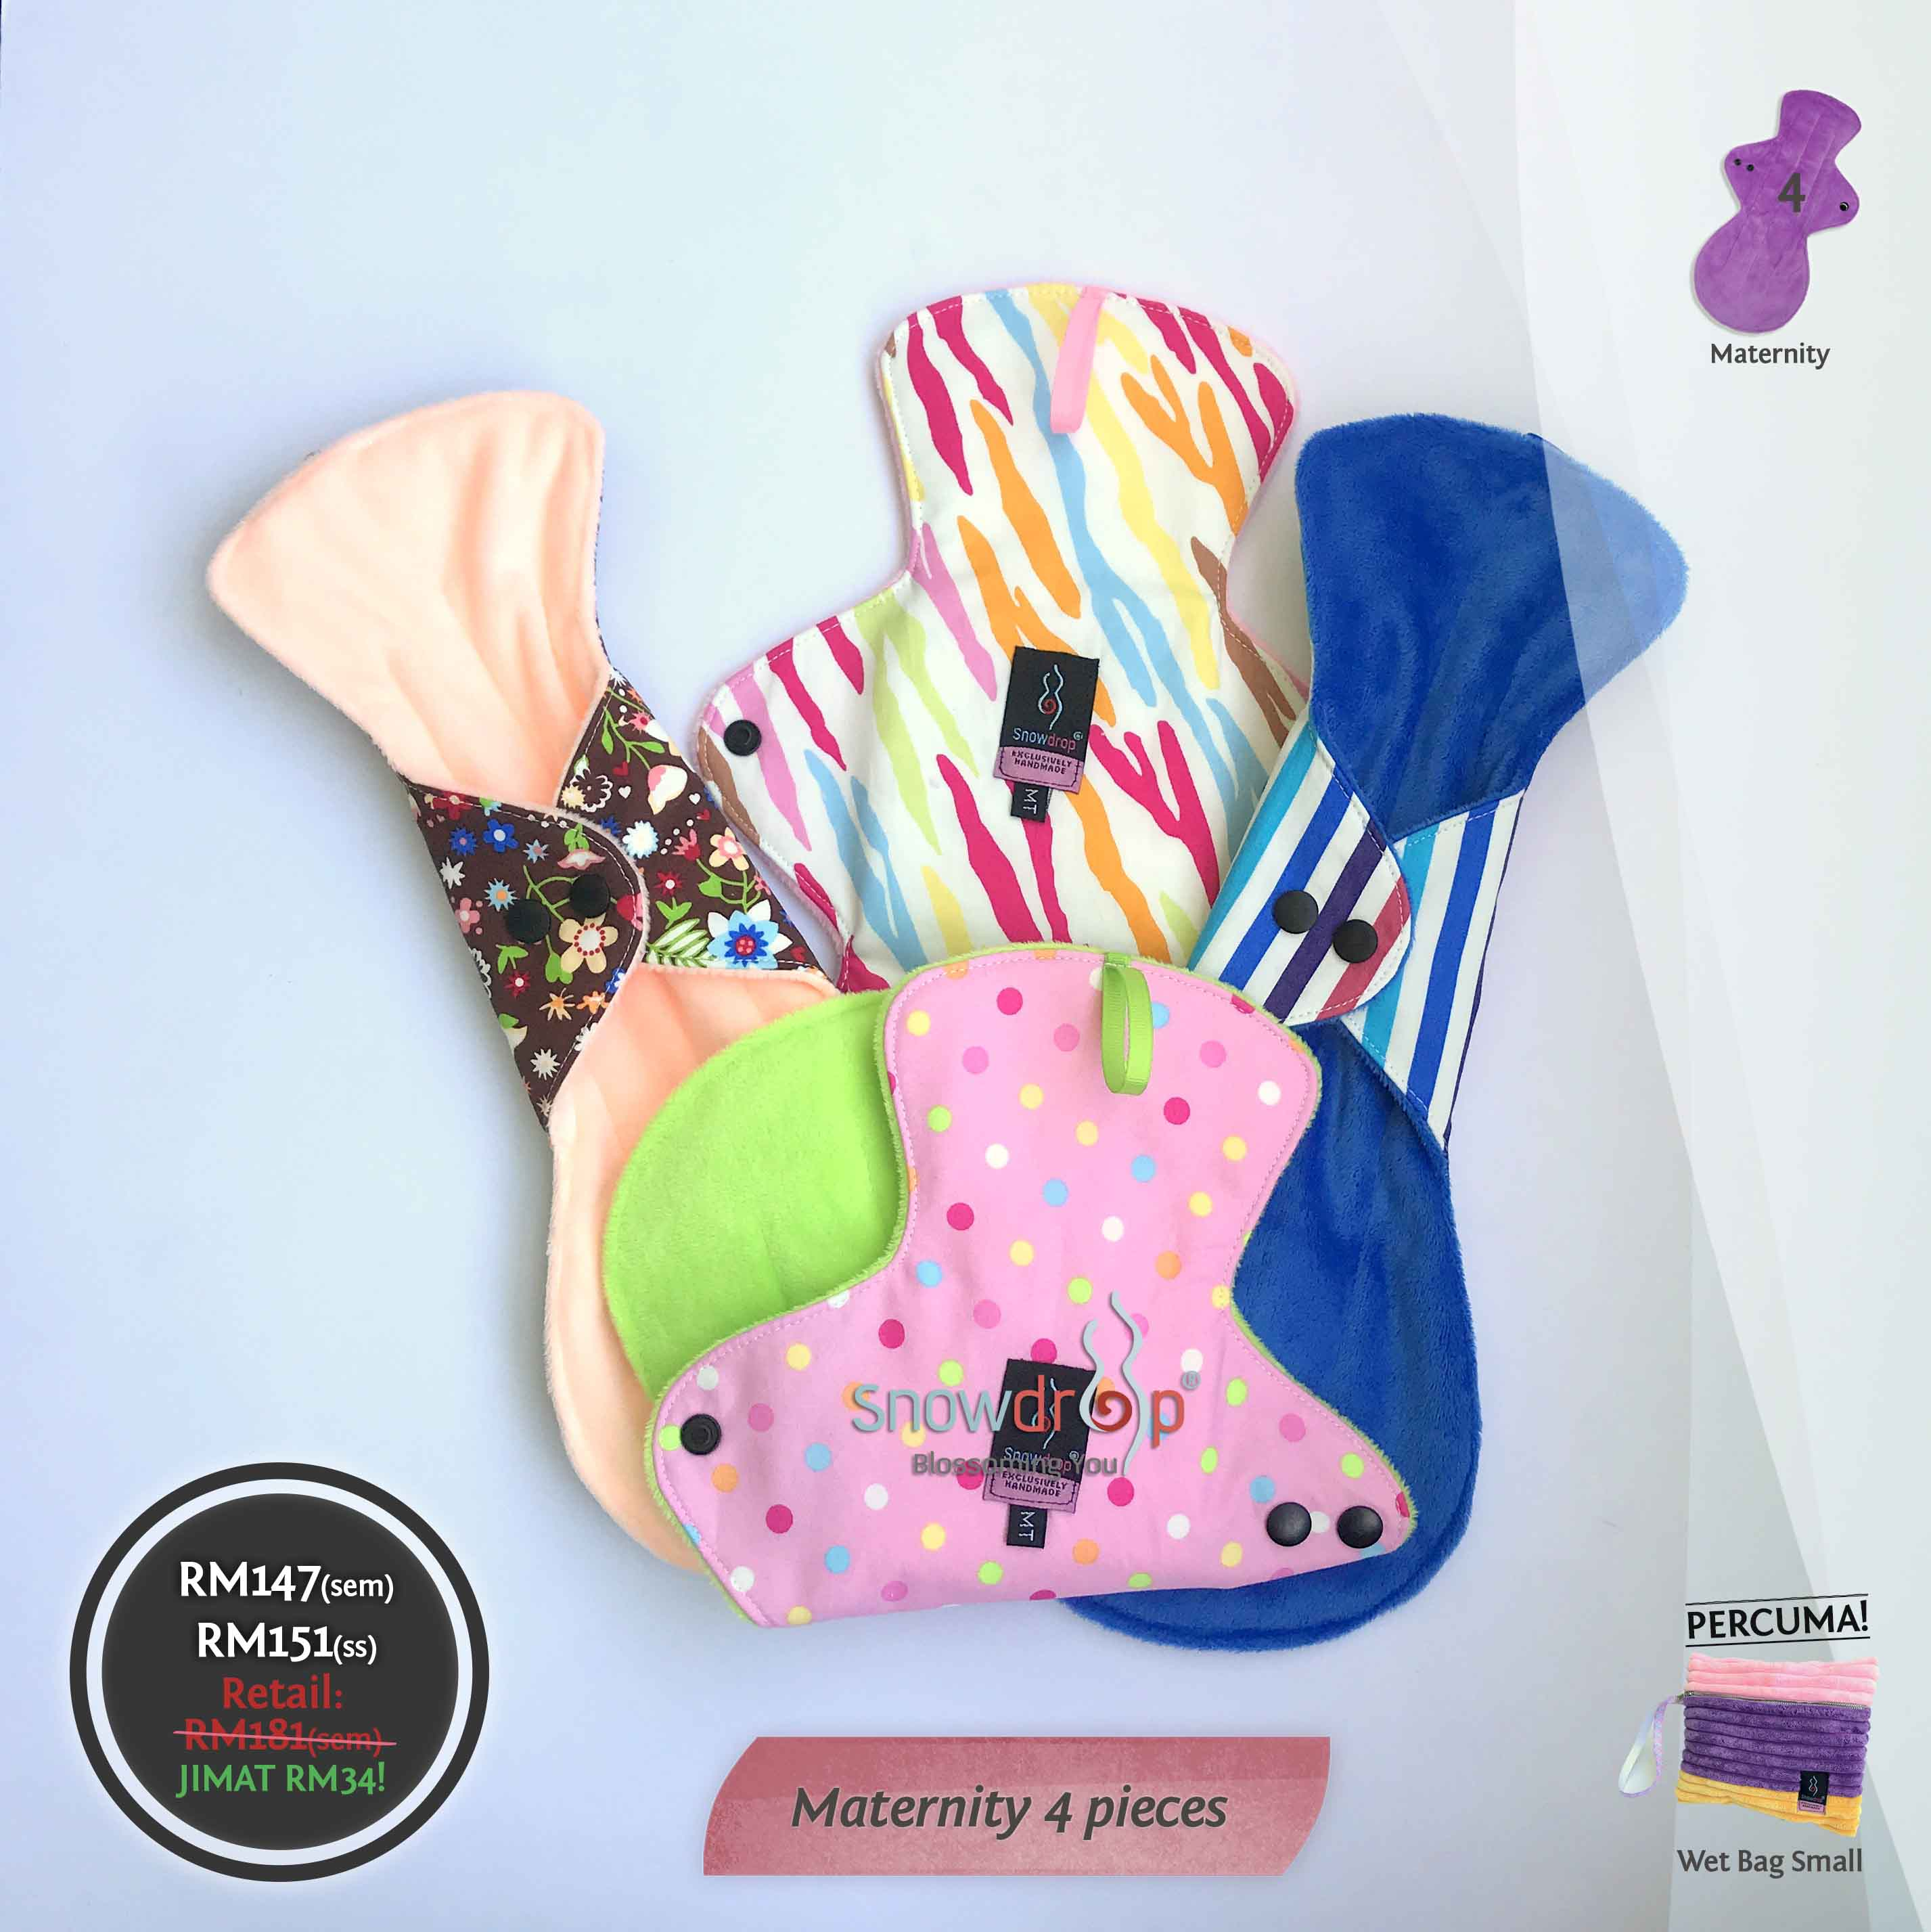 Maternity 4 Pieces Package